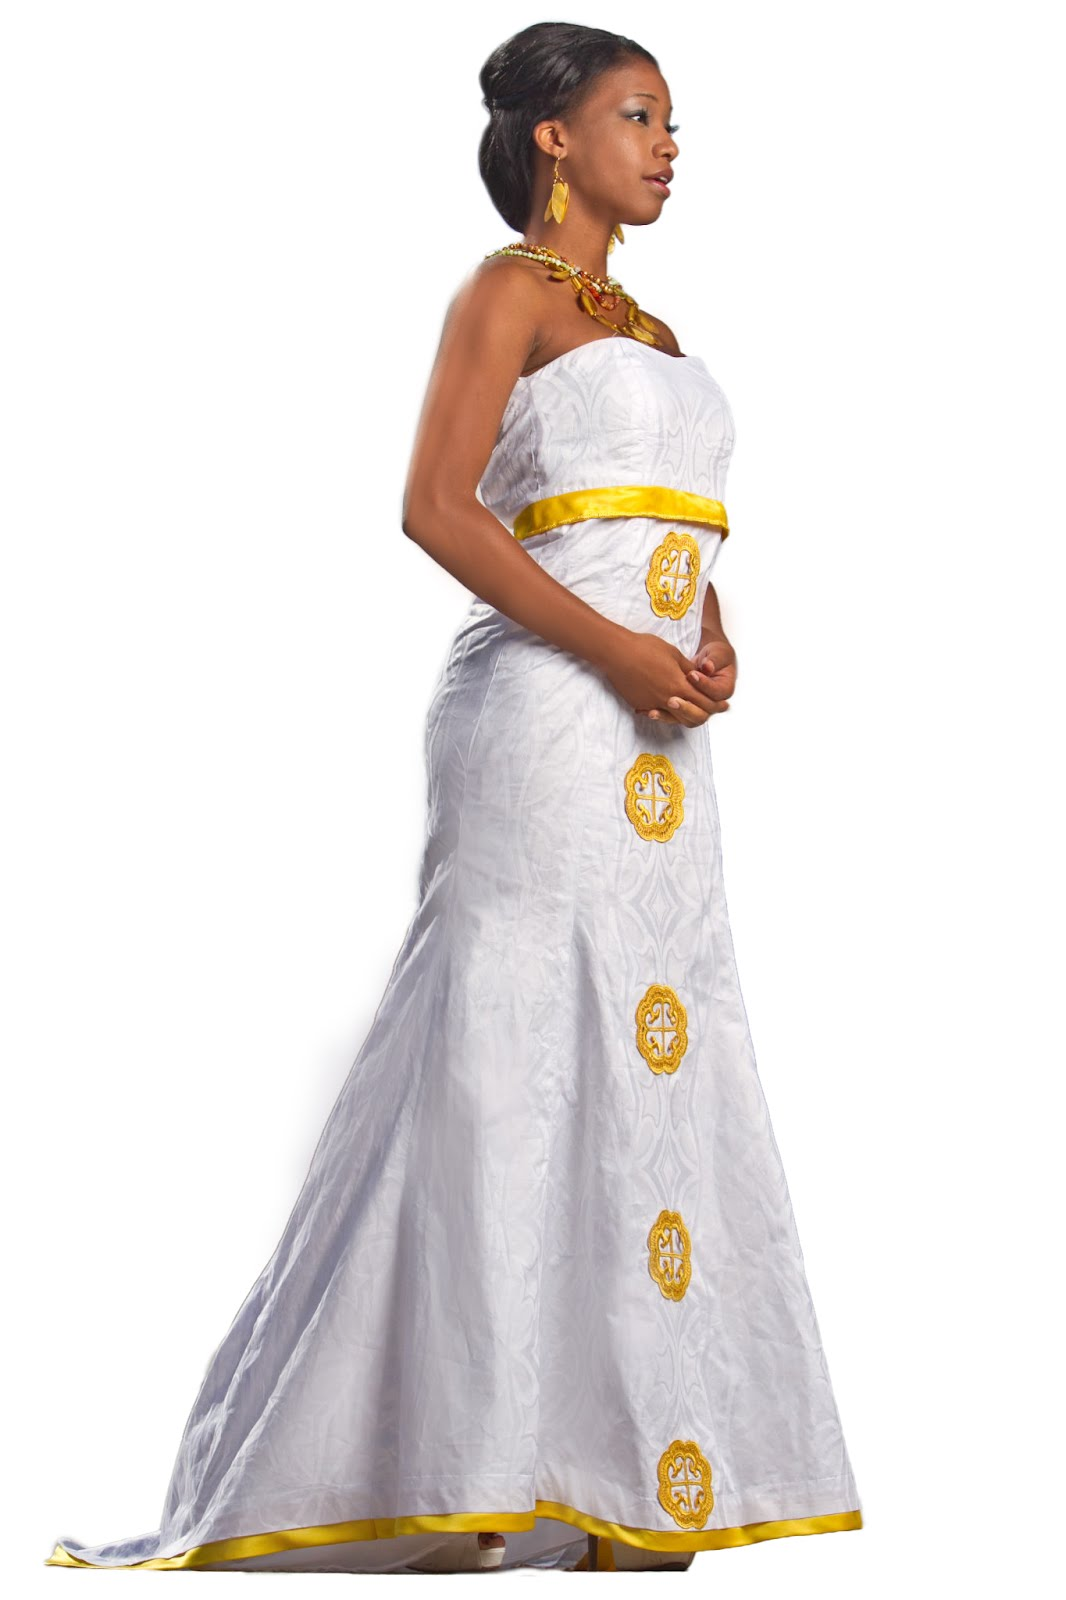 Latest Trends Of African American Wedding Dresses - Life n Fashion